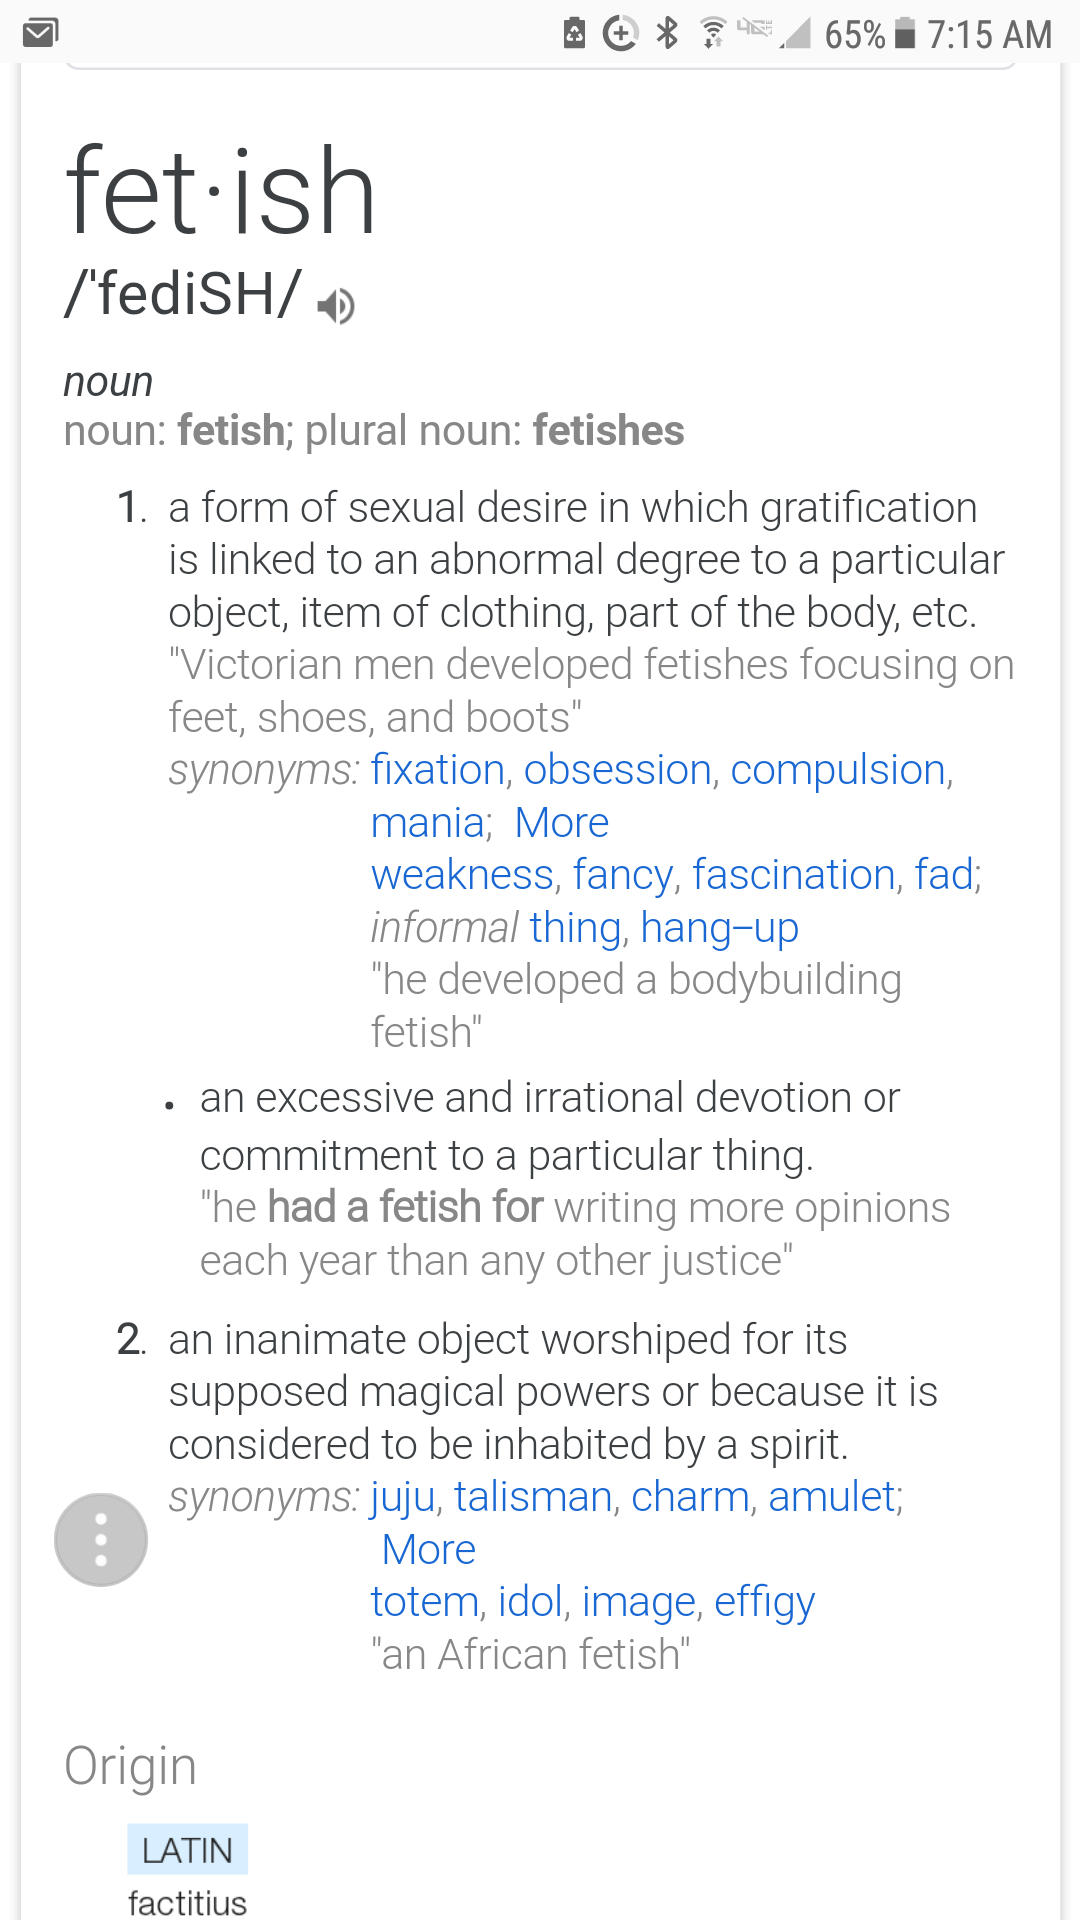 Sexually obsessed synonym